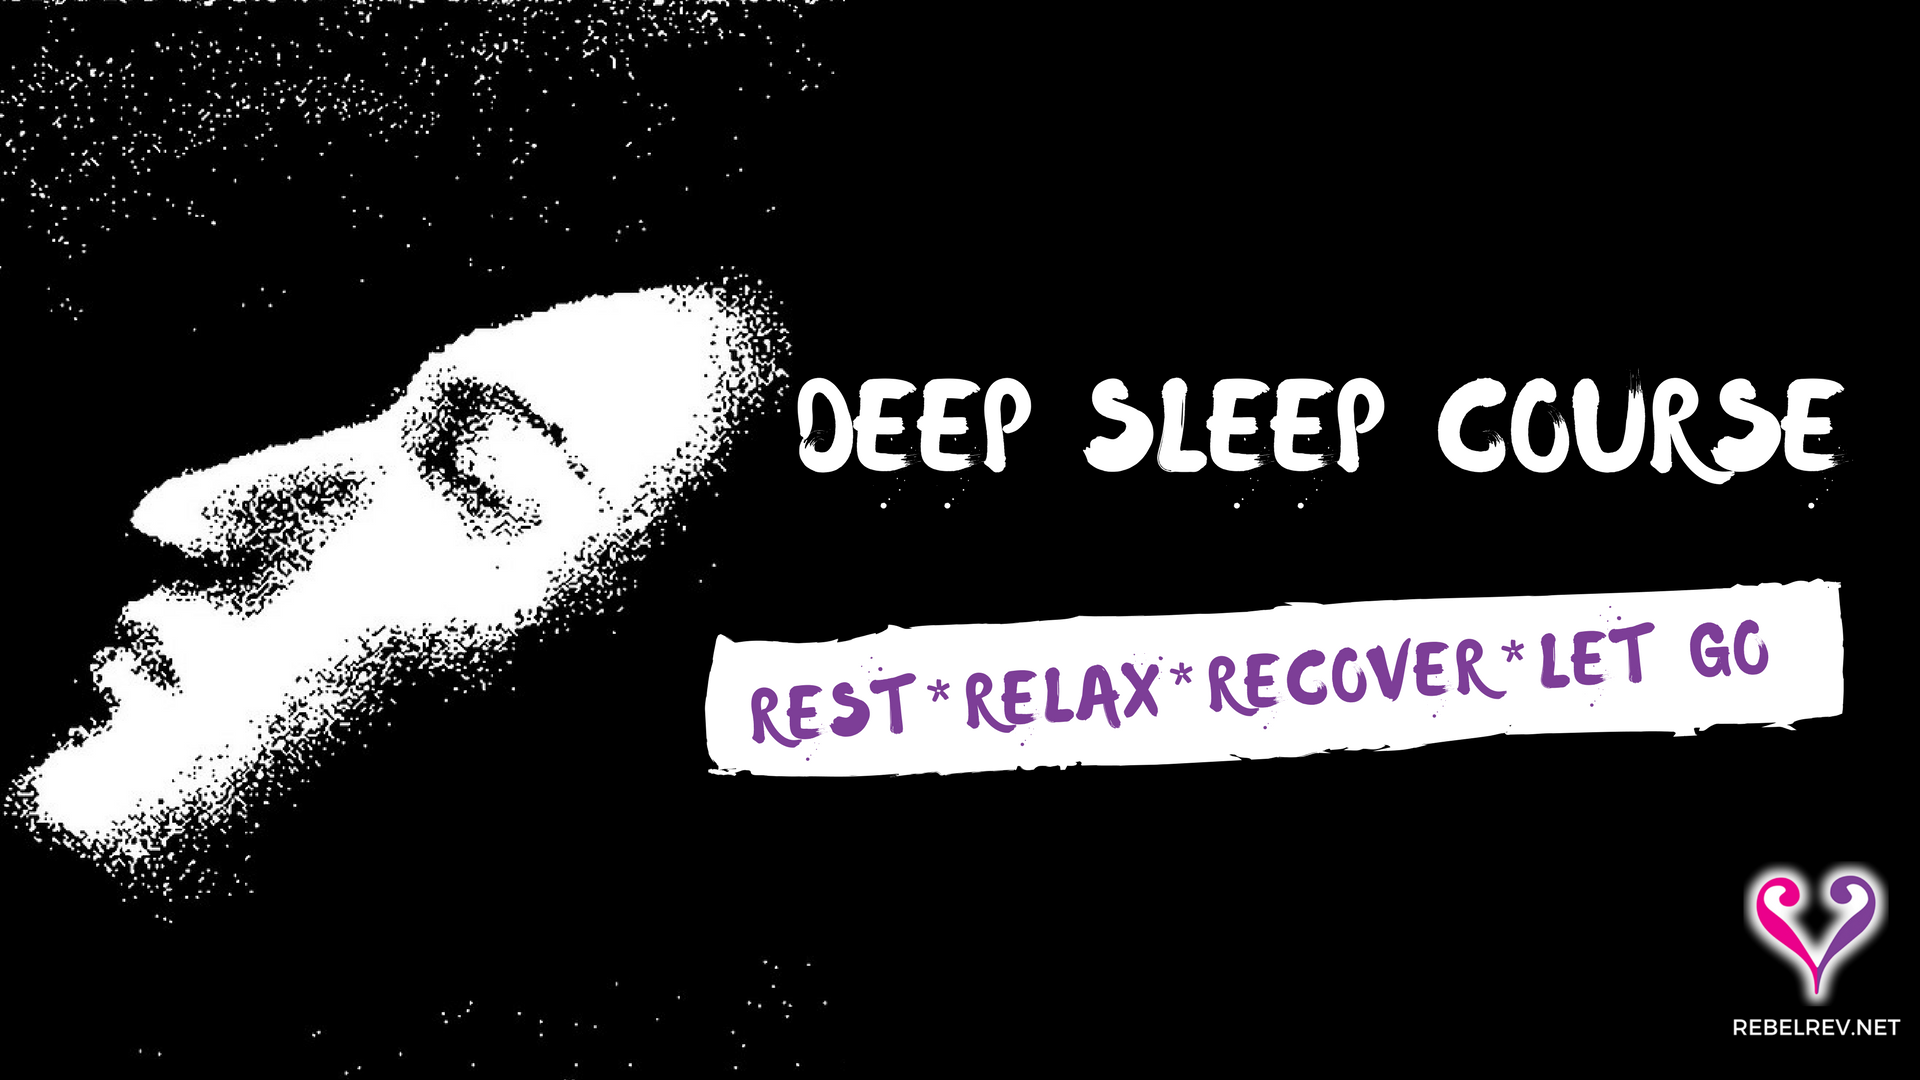 A course of yoga, meditation, relaxation and yoga nidra for deep restorative sleep - 50% of all sales up to 11 November go to The YMCA Sleep Out Fundraiser.